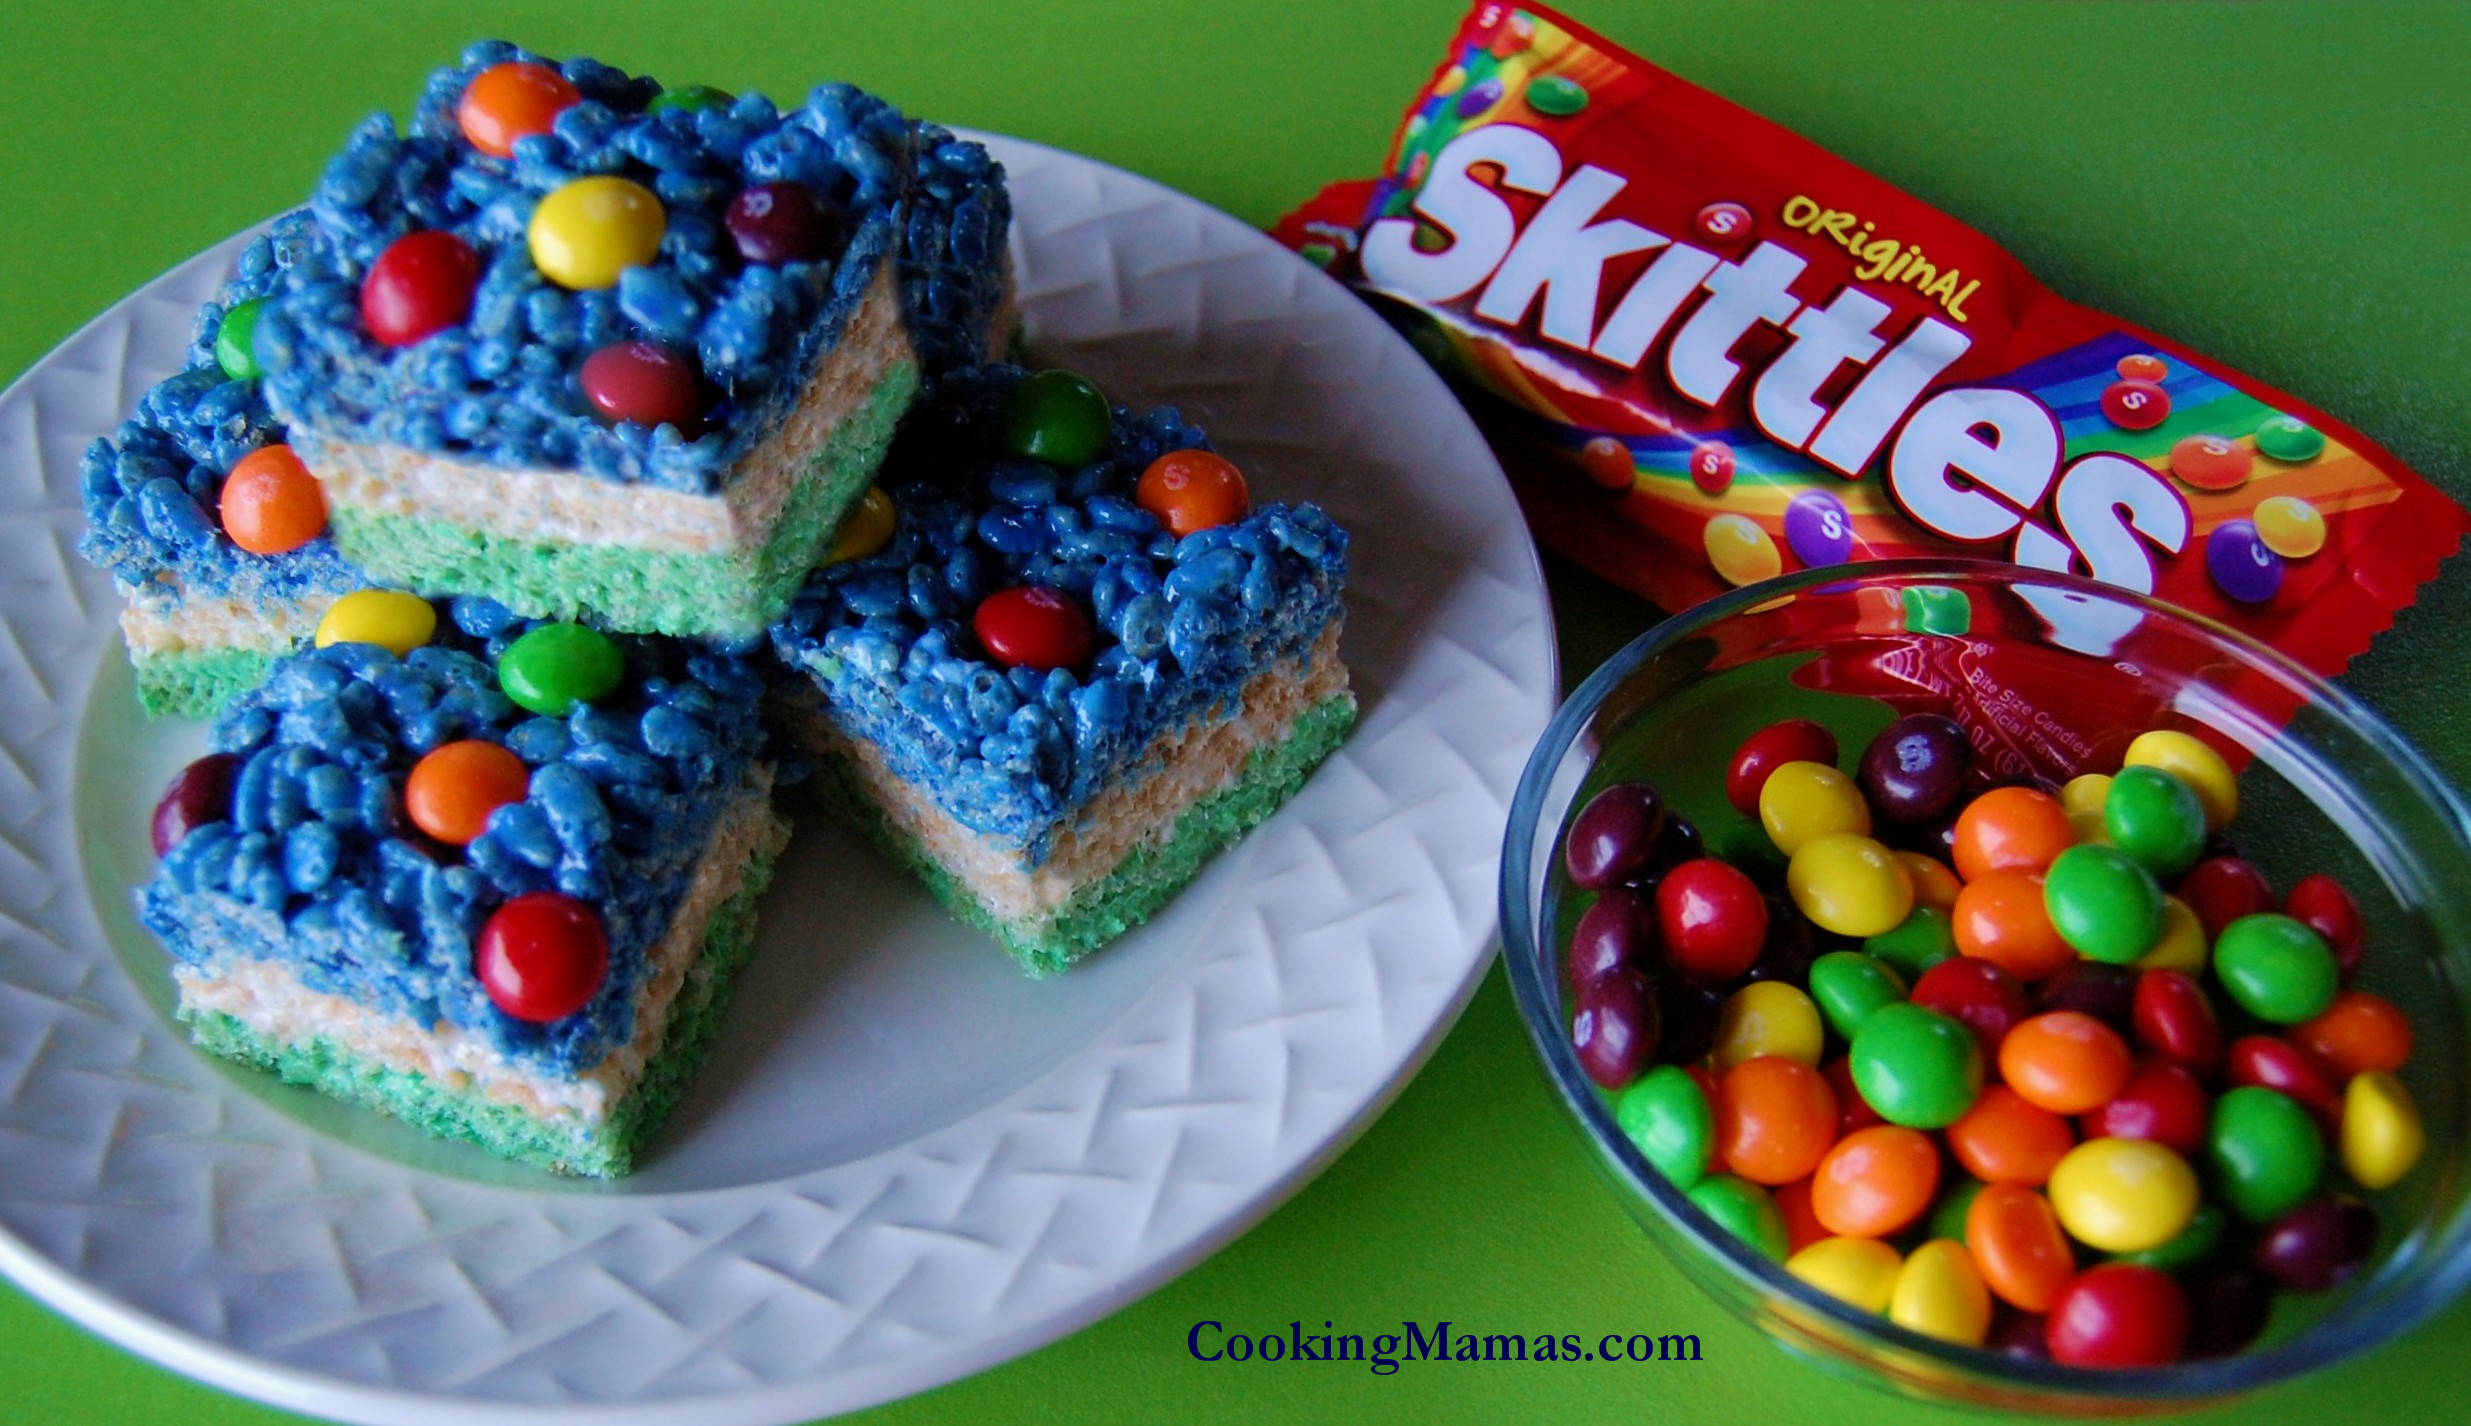 Seahawk Beast Mode Rice Krispies Treats | Cooking Mamas